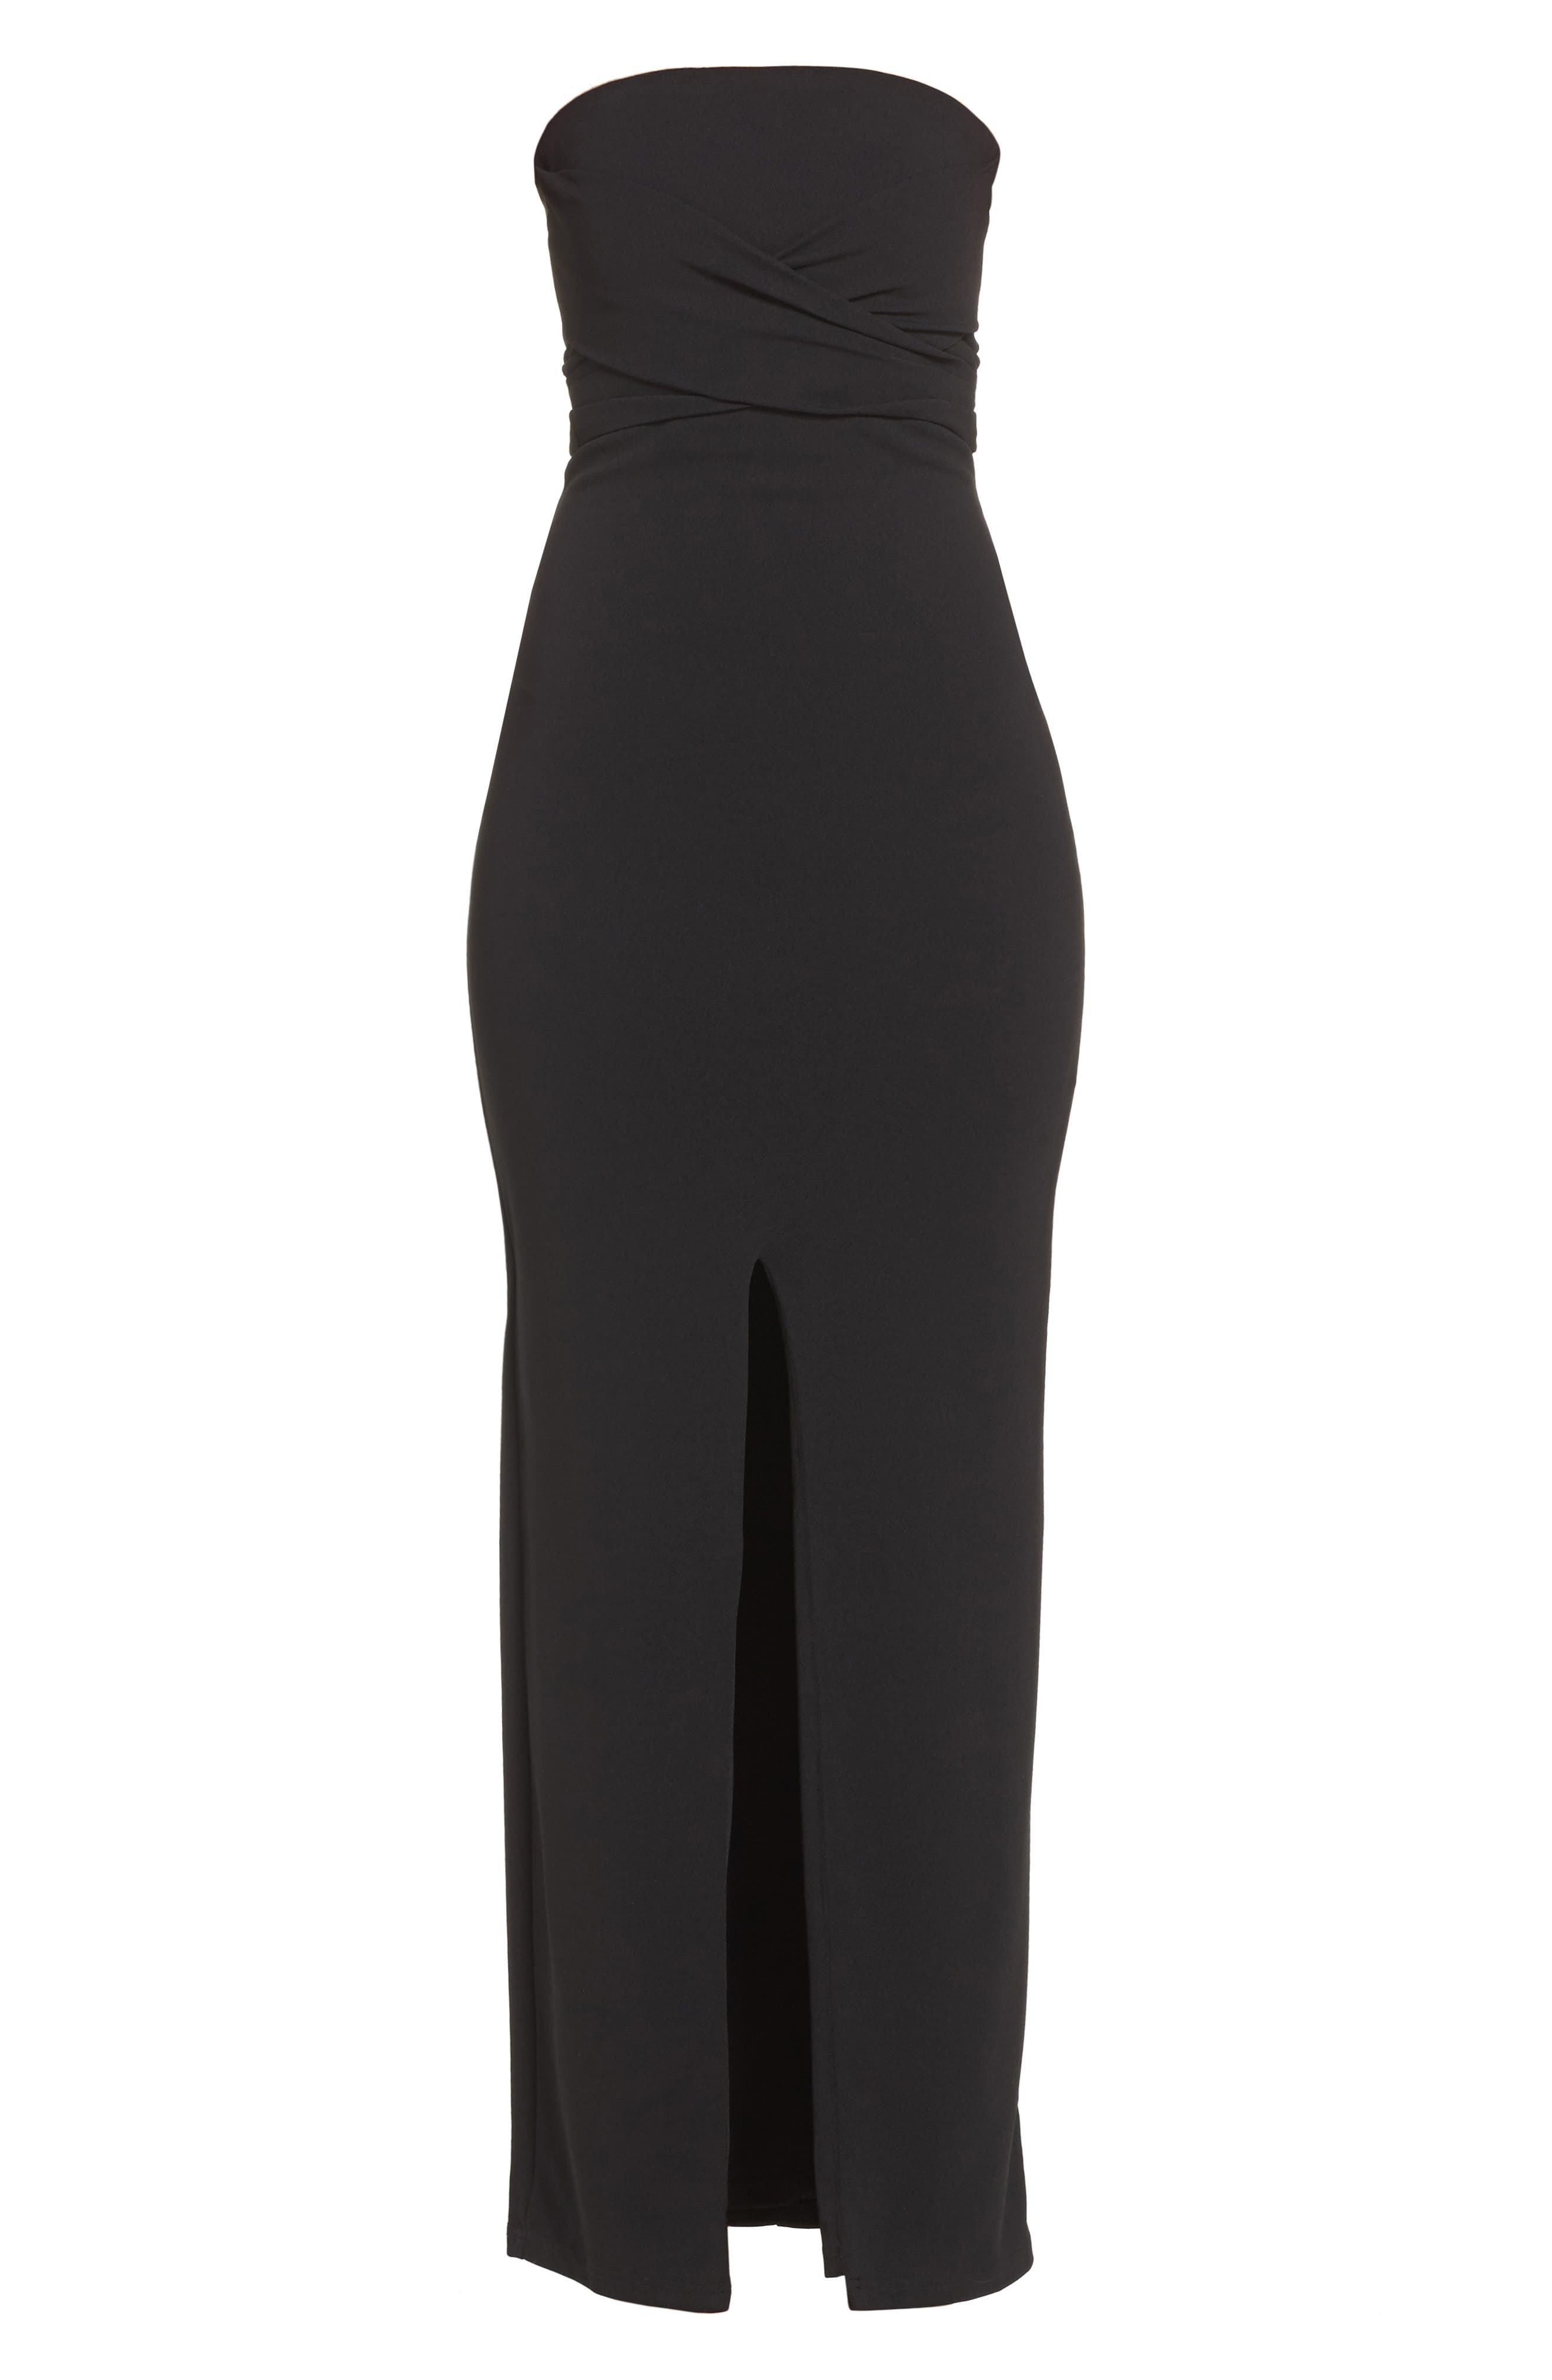 LULUS, Own the Night Strapless Maxi Dress, Alternate thumbnail 7, color, BLACK